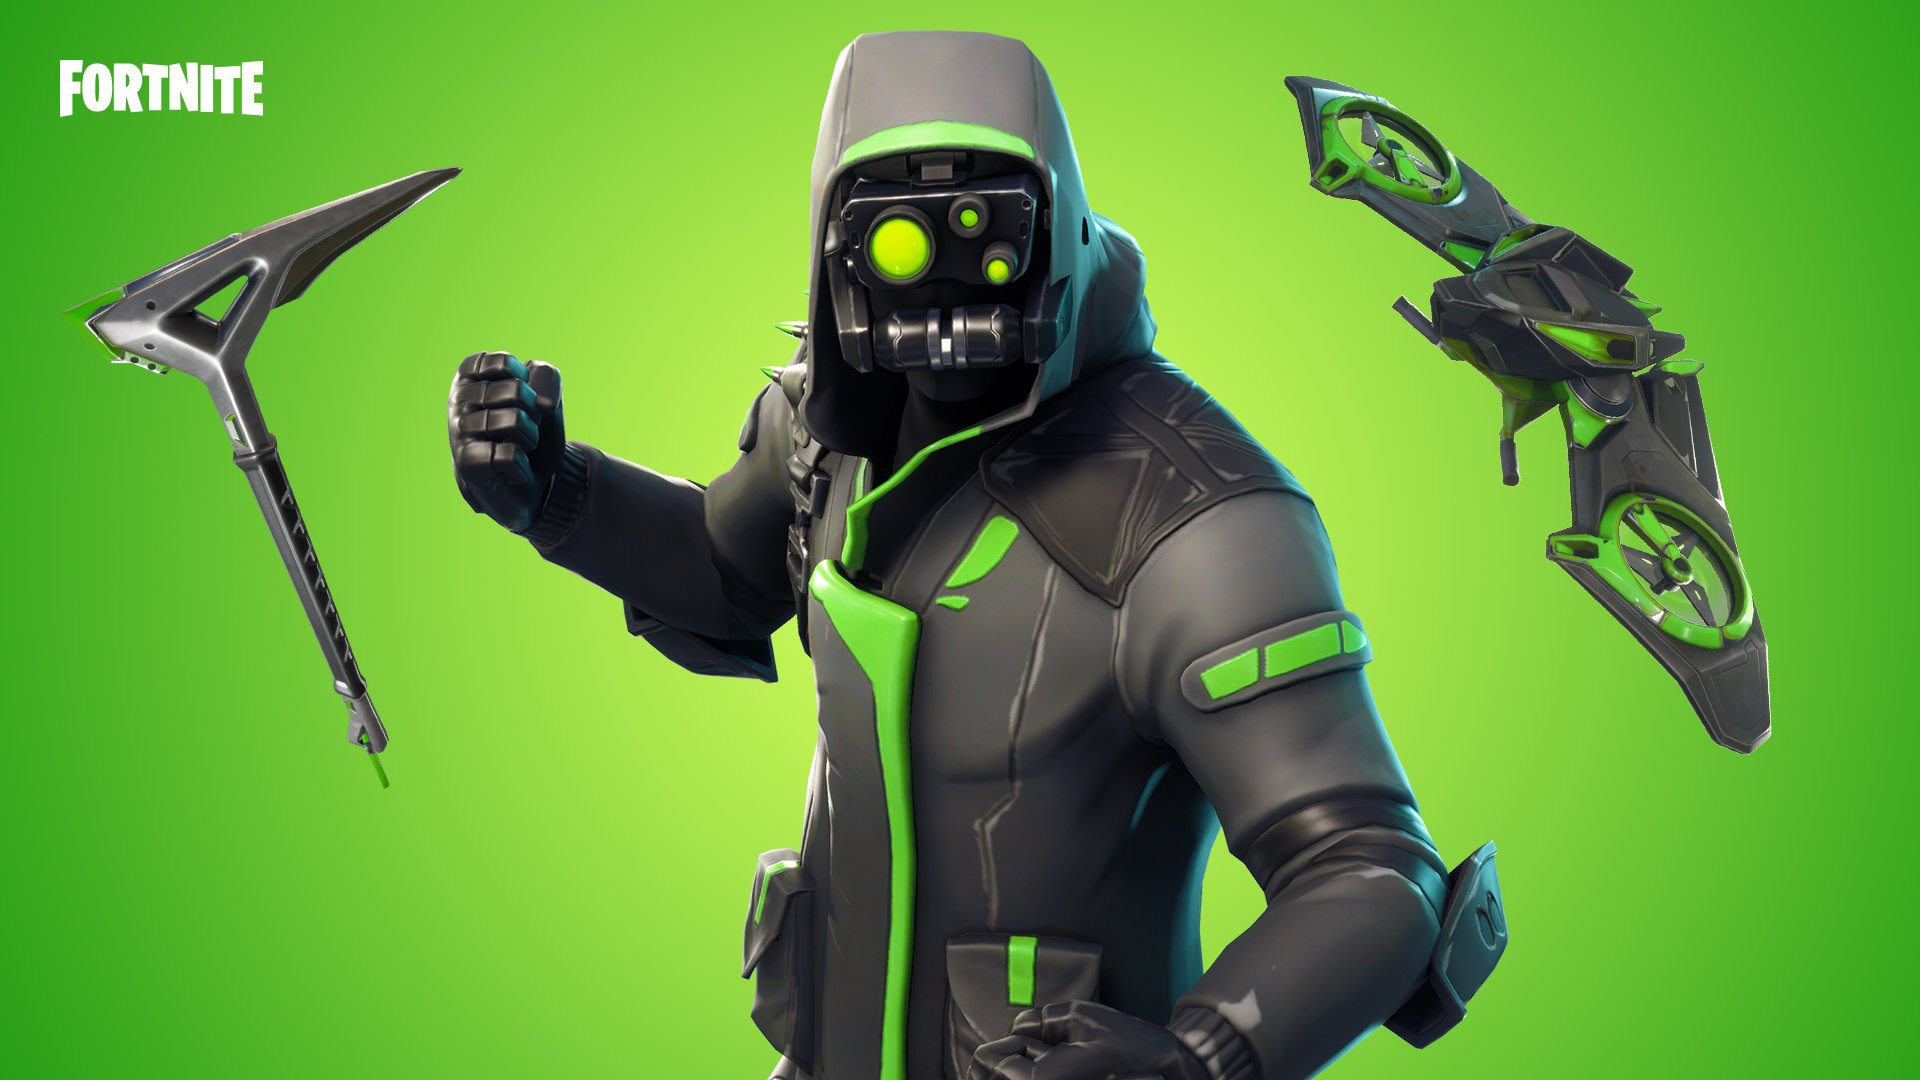 if you like to download this wallpaper please use this - pioche a 500 v bucks fortnite